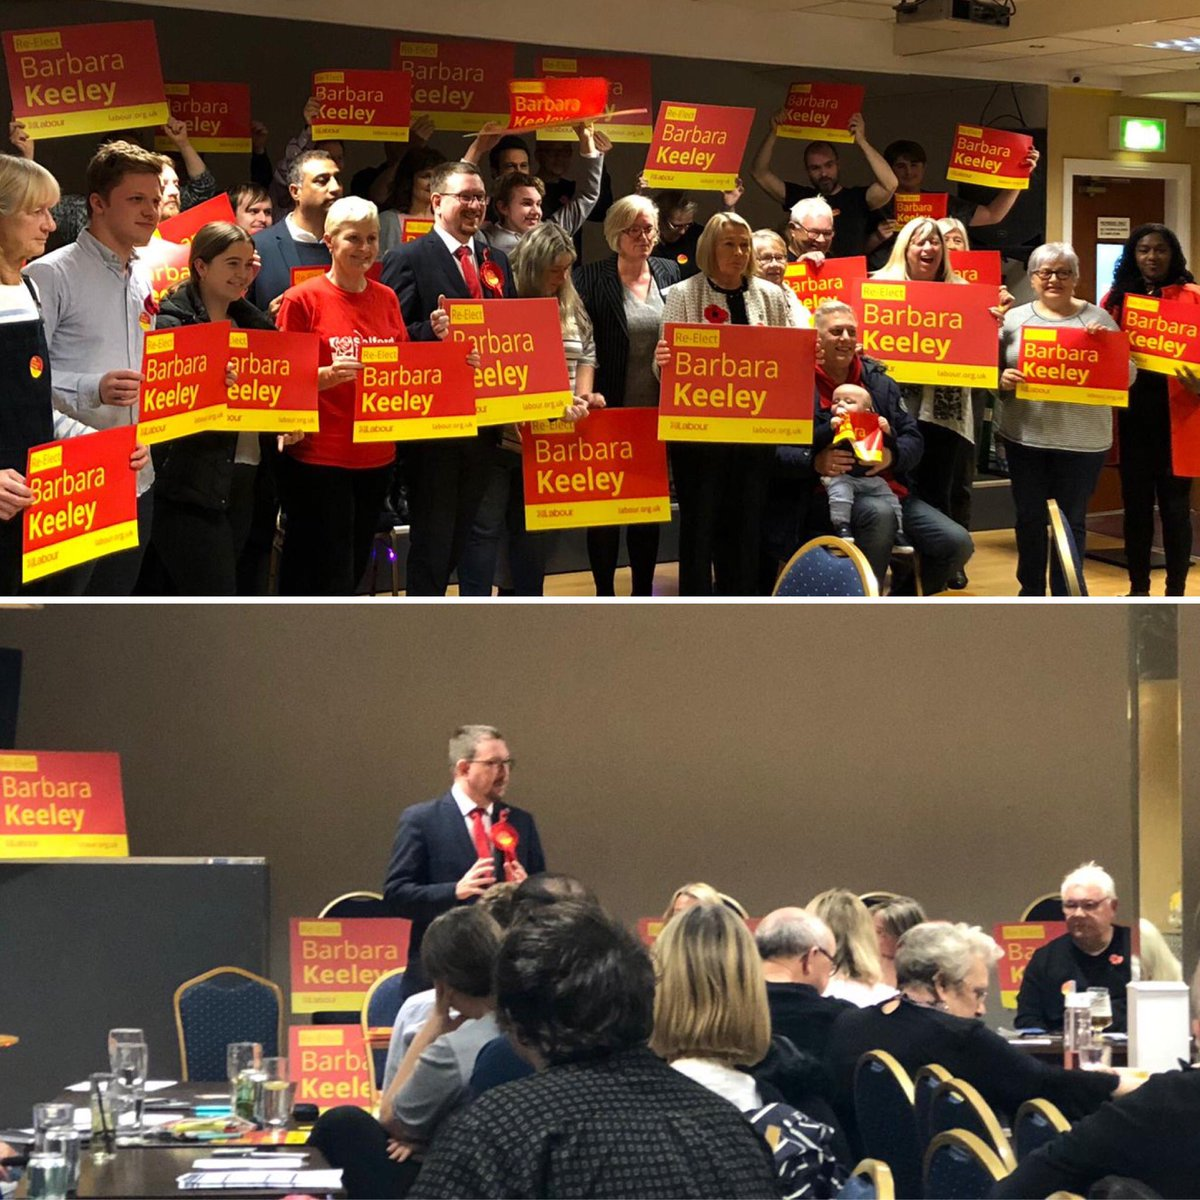 Proud to be asked to help launch my mate @KeeleyMP's re-election campaign in Worsley & Eccles South. She's been amazing over the past 14 years: campaigning on social care, mental health and for the 1950s-born women fighting for pension justice. #VoteLabour2019 #RealChange 🌹